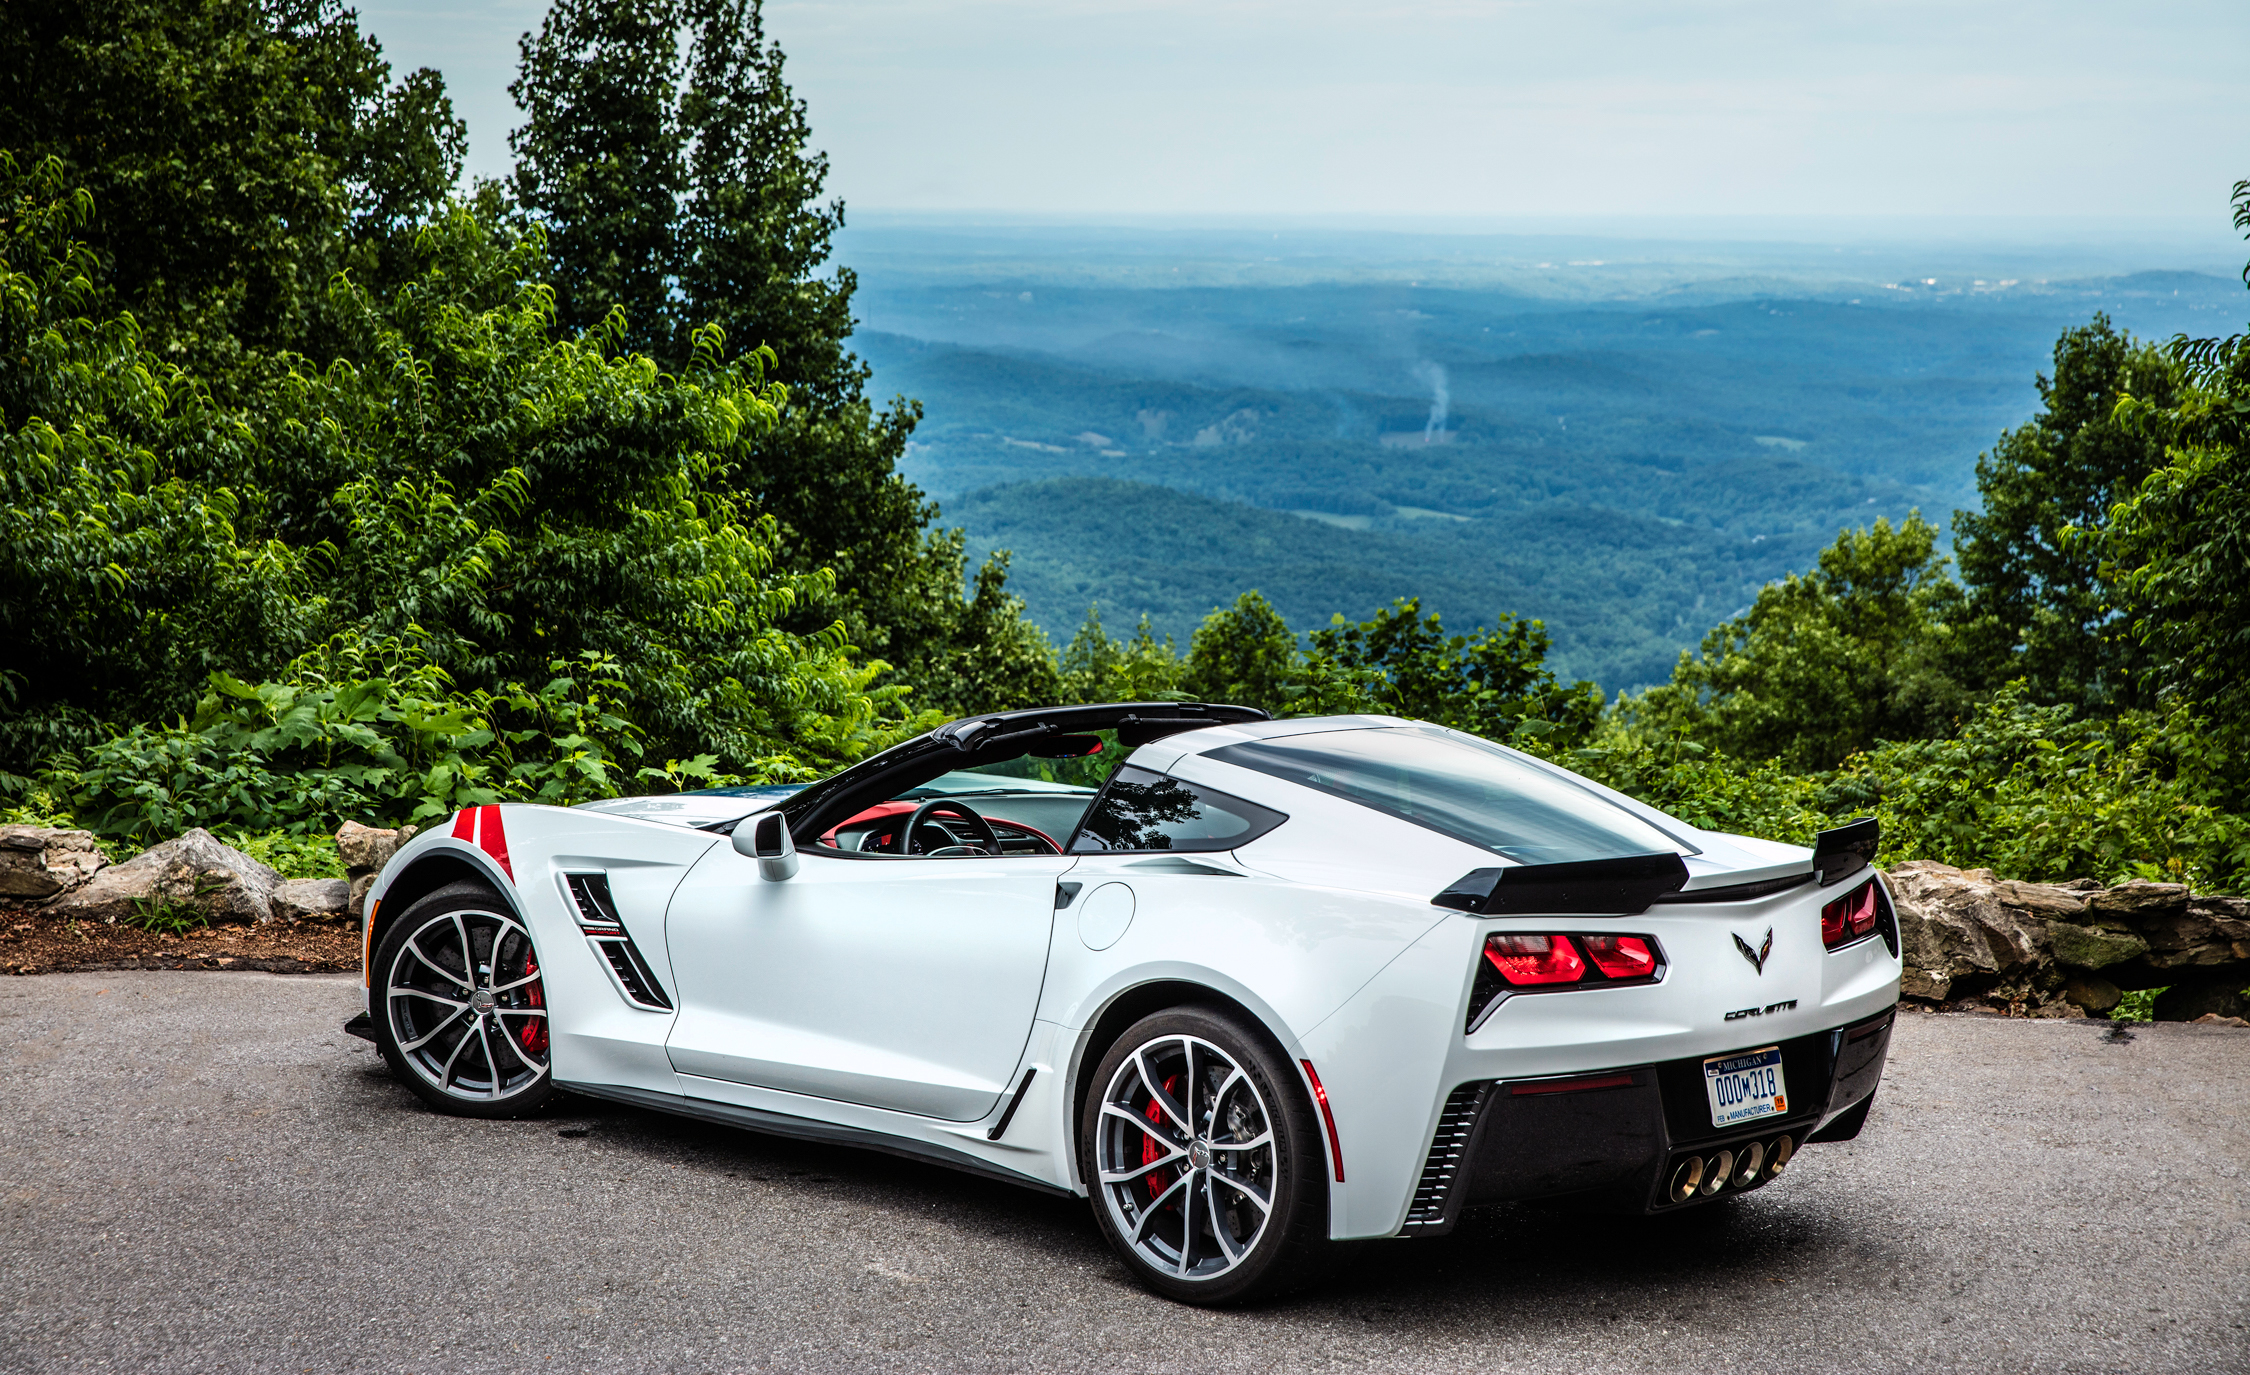 Chevrolet Corvette C7 Sports Car